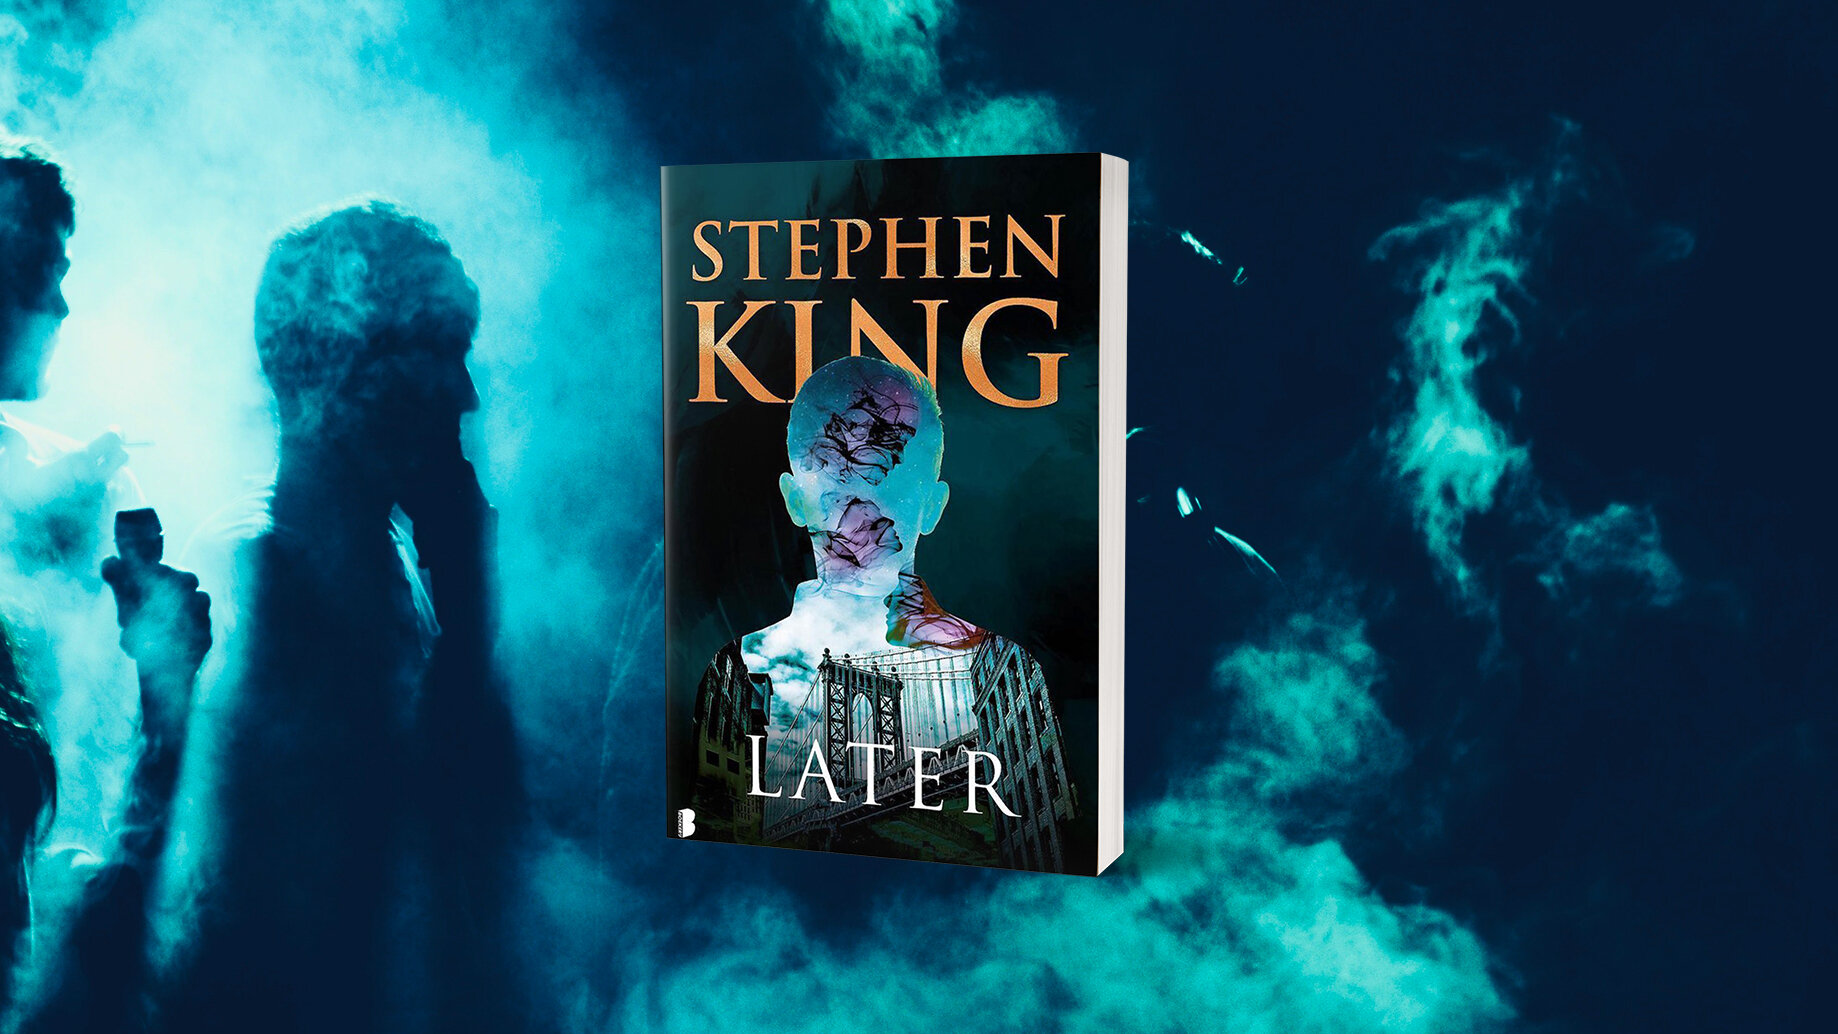 Header later stephen king